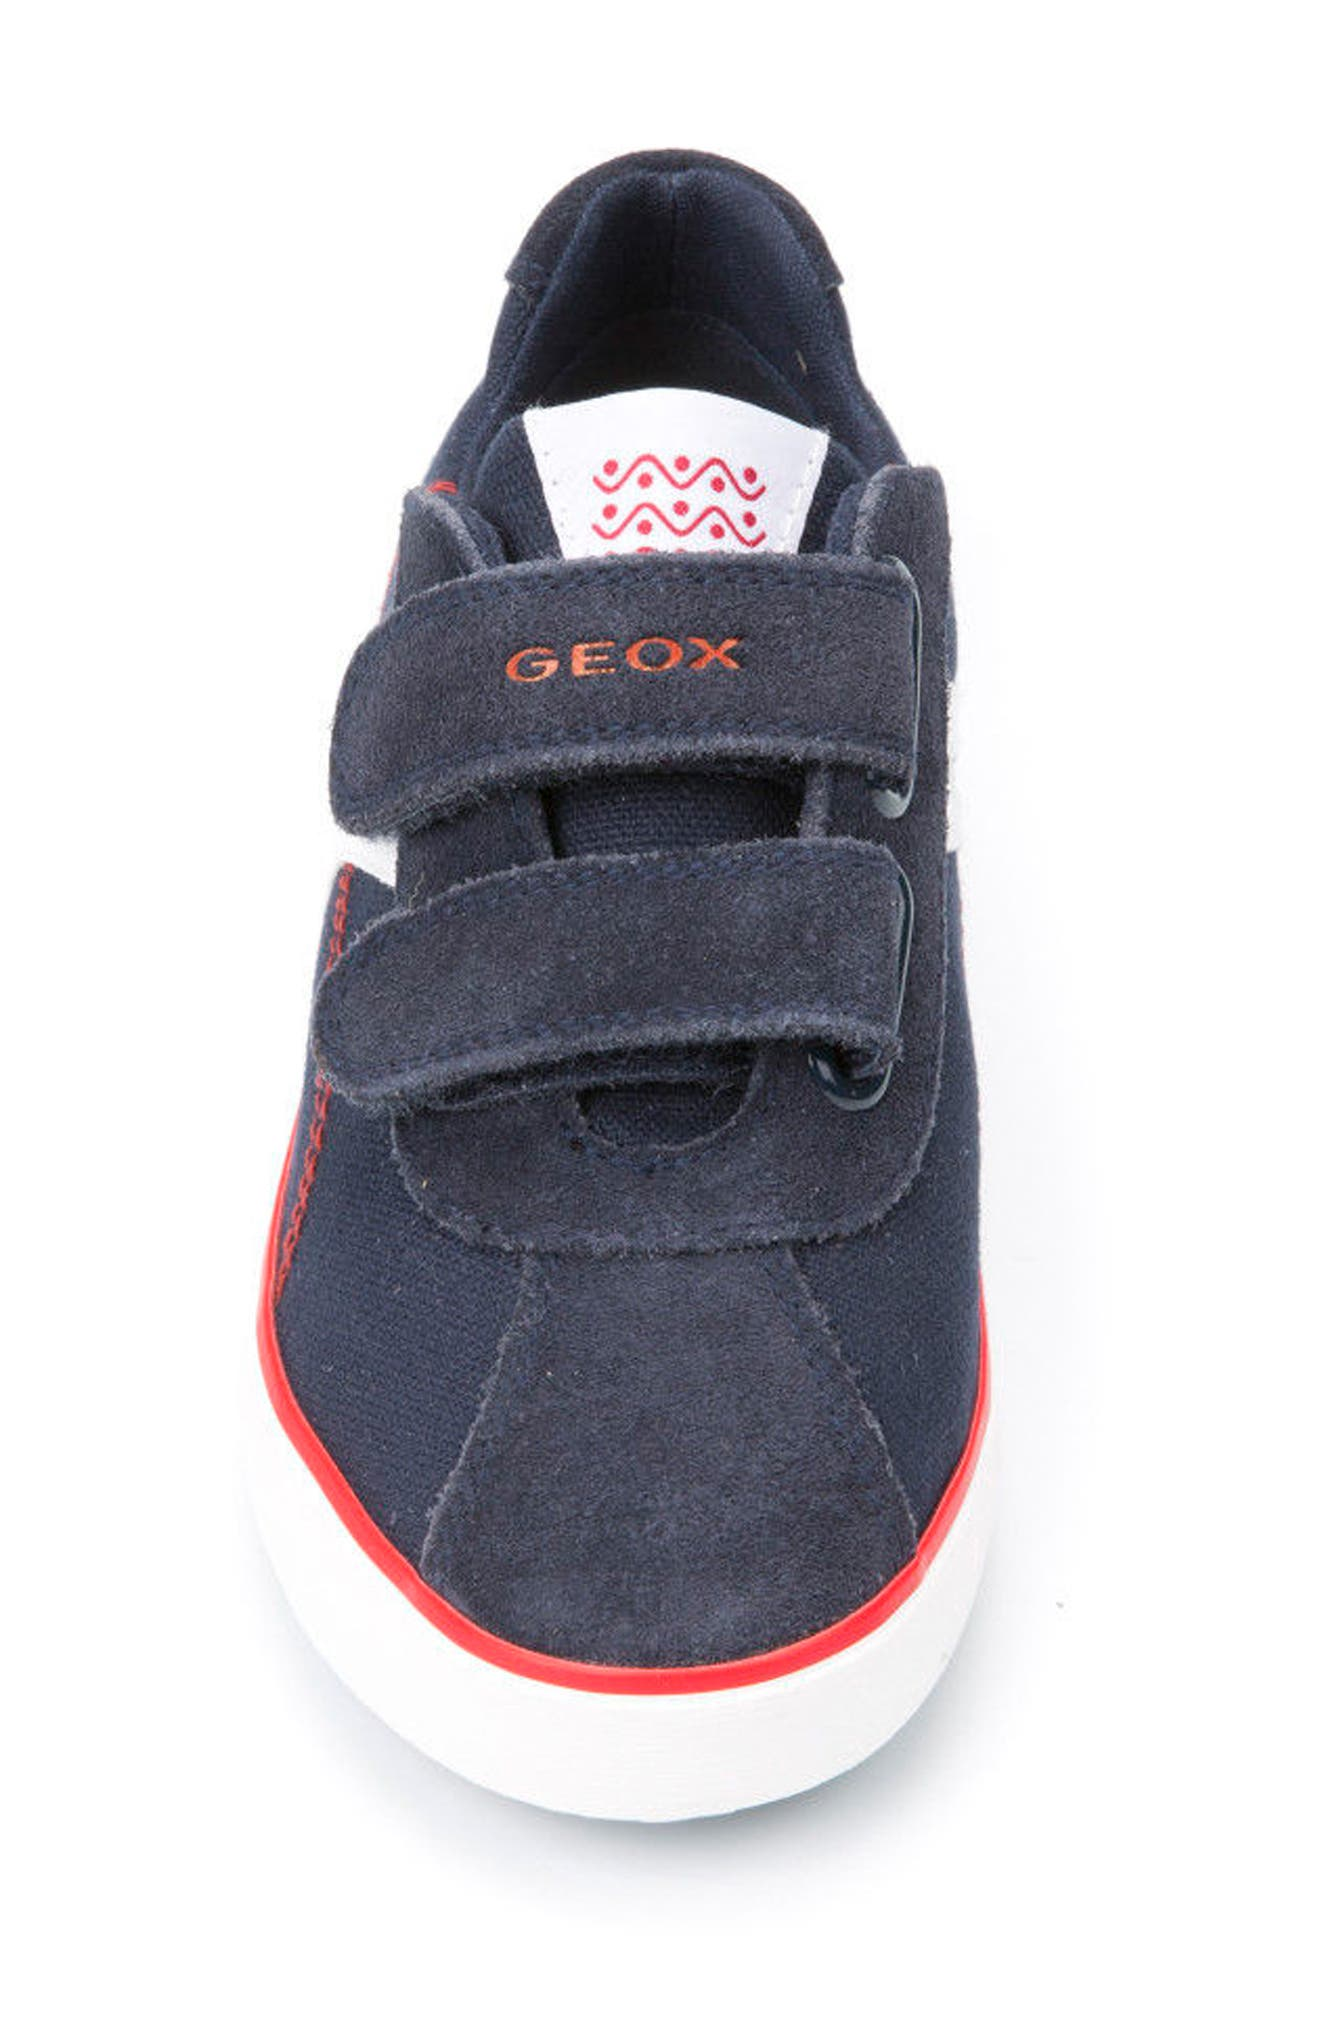 Kilwi Low Top Sneaker,                             Alternate thumbnail 4, color,                             NAVY/ RED